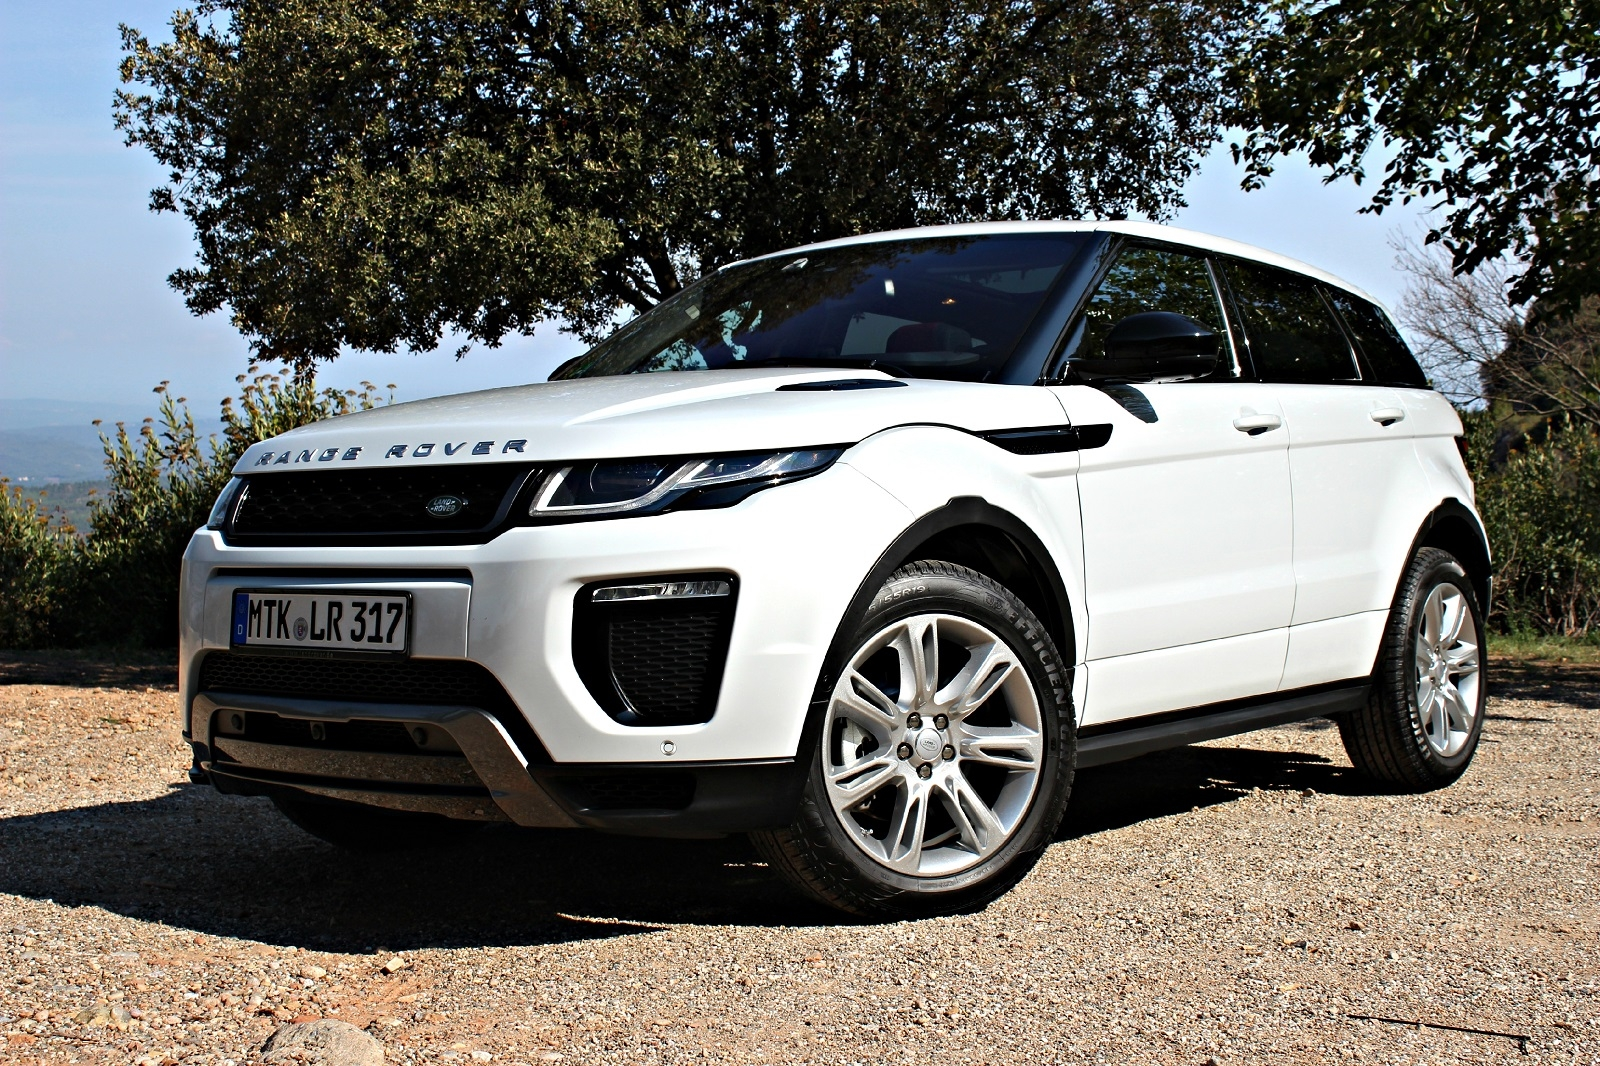 essai range rover evoque restyl e plus qu 39 un simple suv. Black Bedroom Furniture Sets. Home Design Ideas